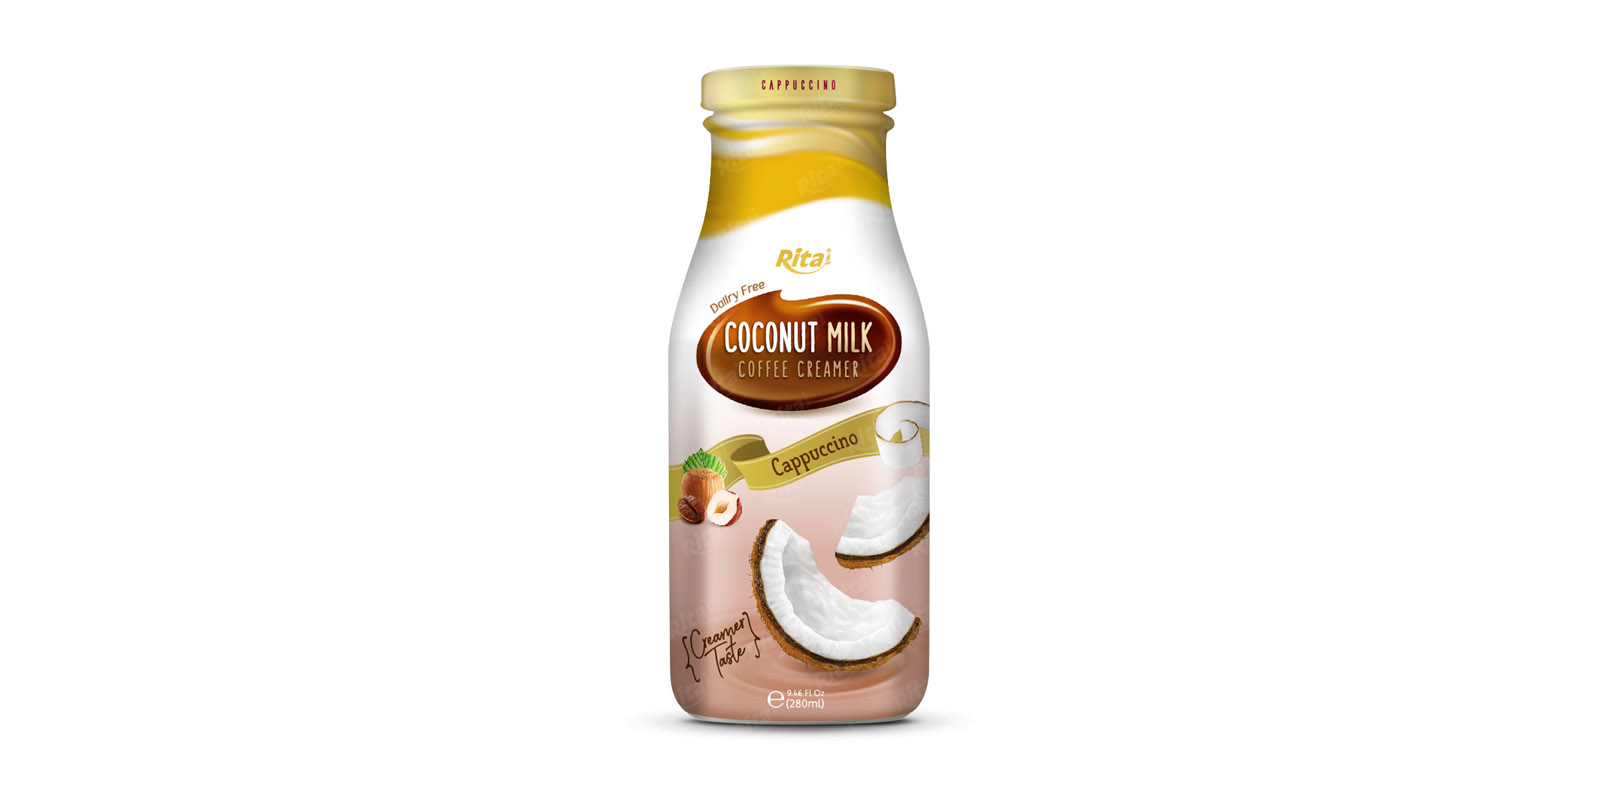 Coconut milk with Coffee Cream cappuccino 280ml from RITA US